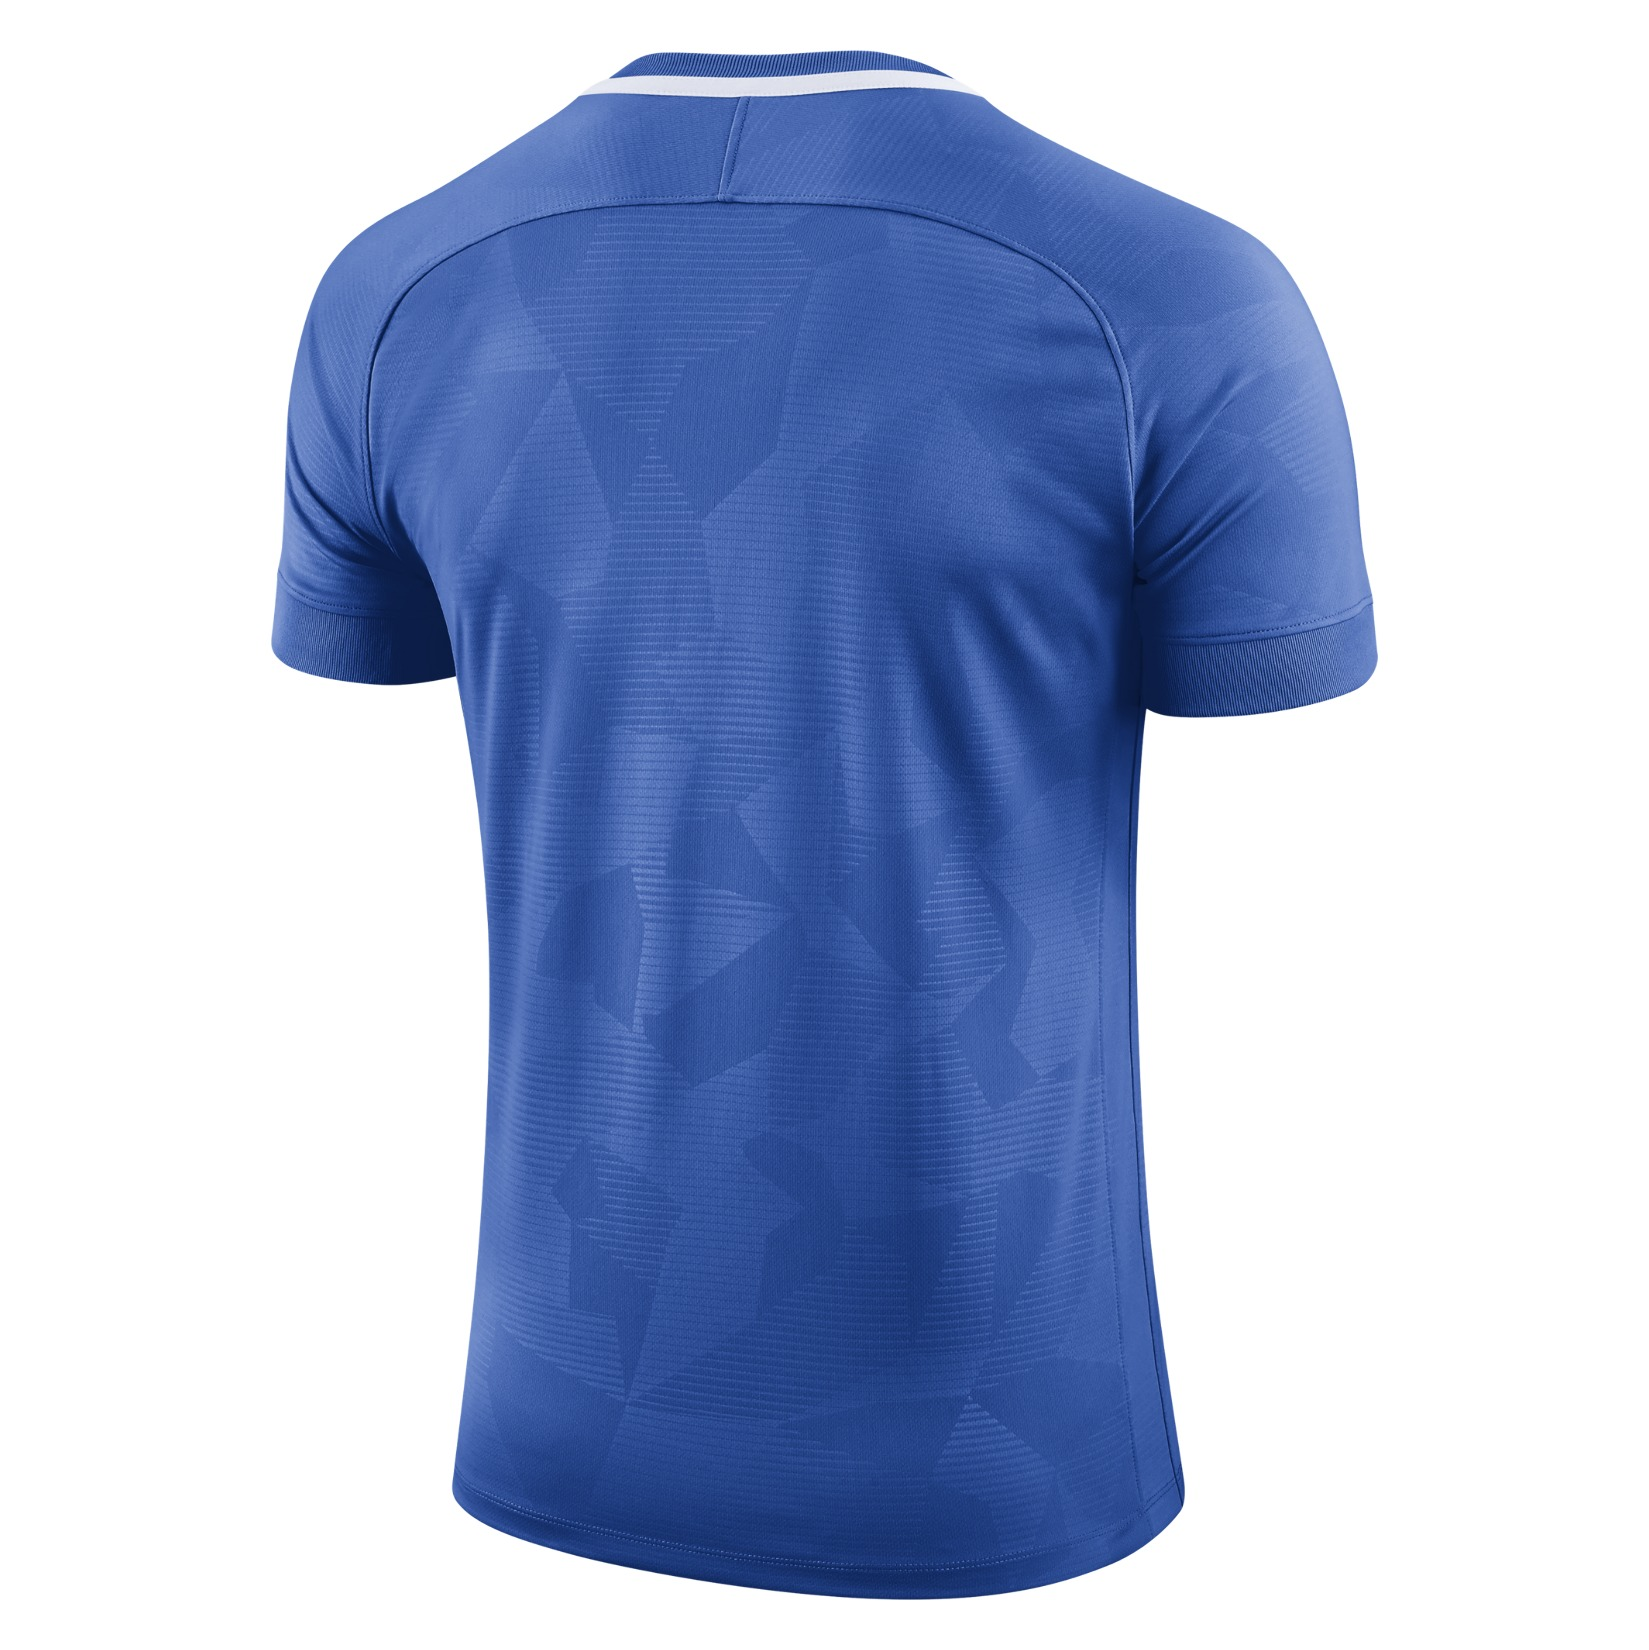 Nike Challenge II Short Sleeve Shirt Royal Blue-White-Royal Blue-White